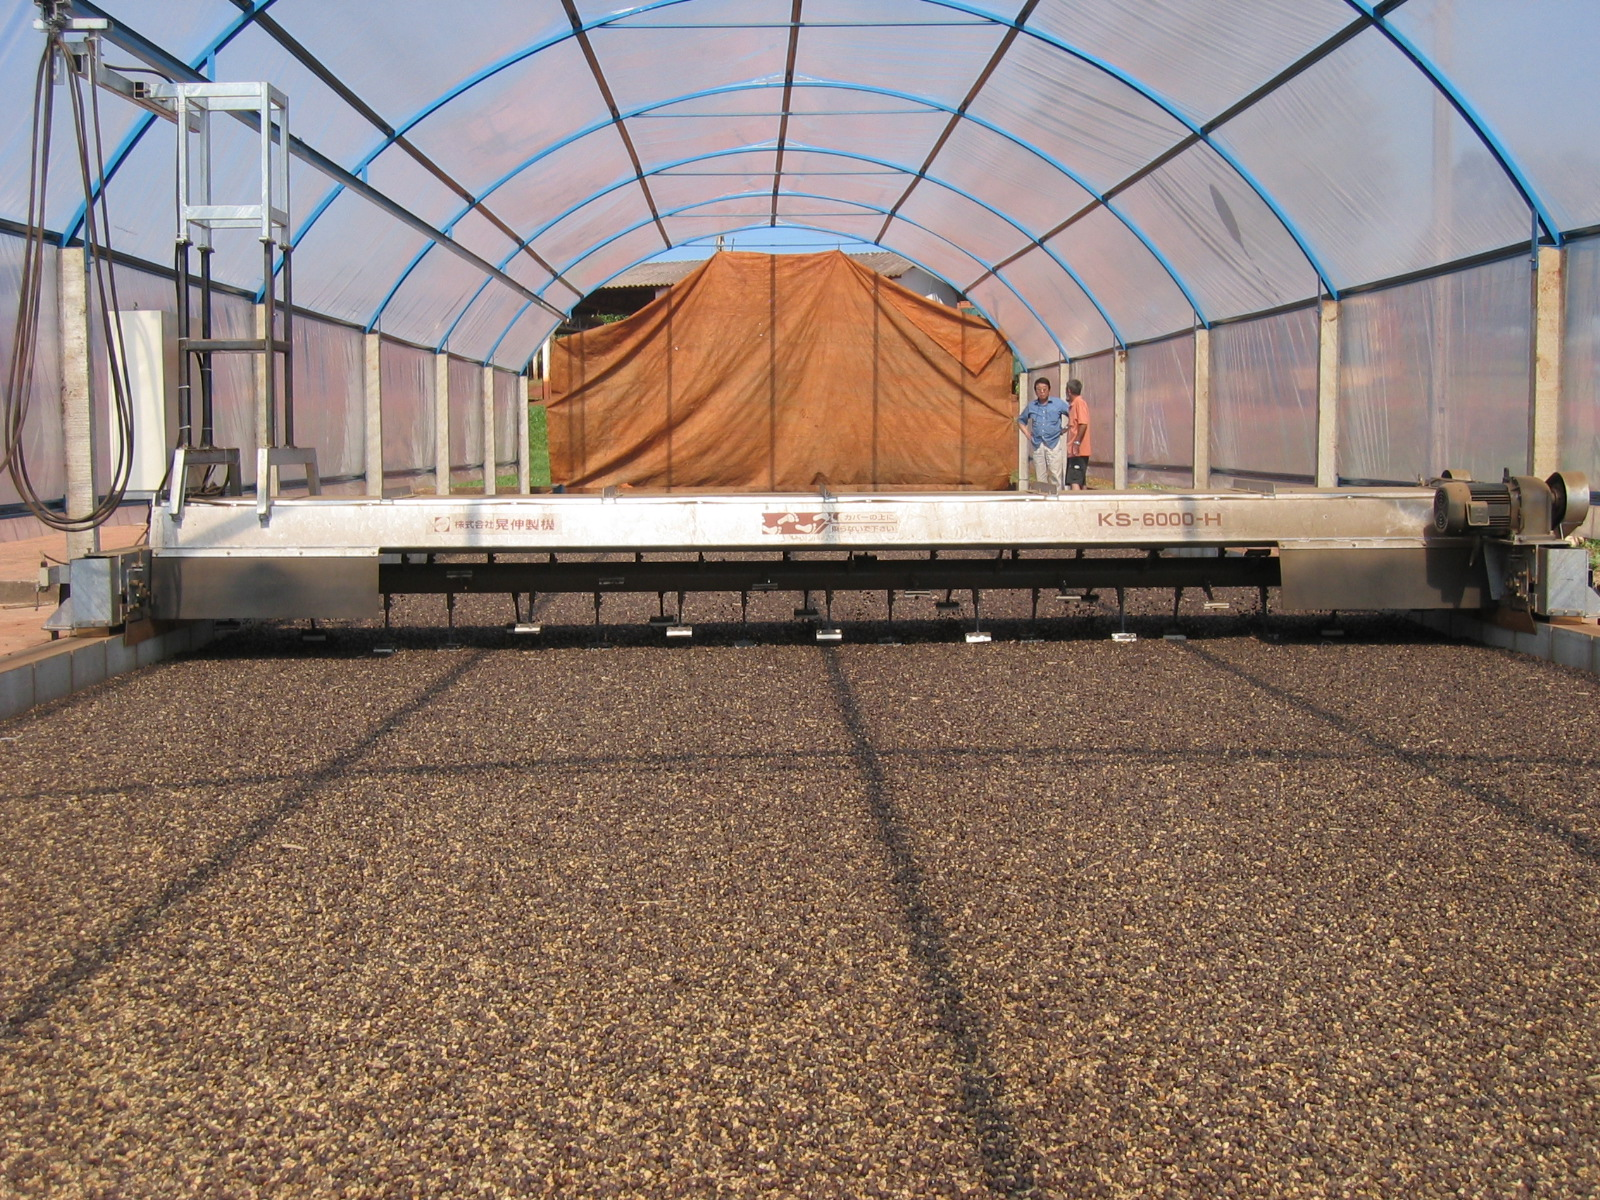 KS-6000H (Picture: Drying coffee beans)